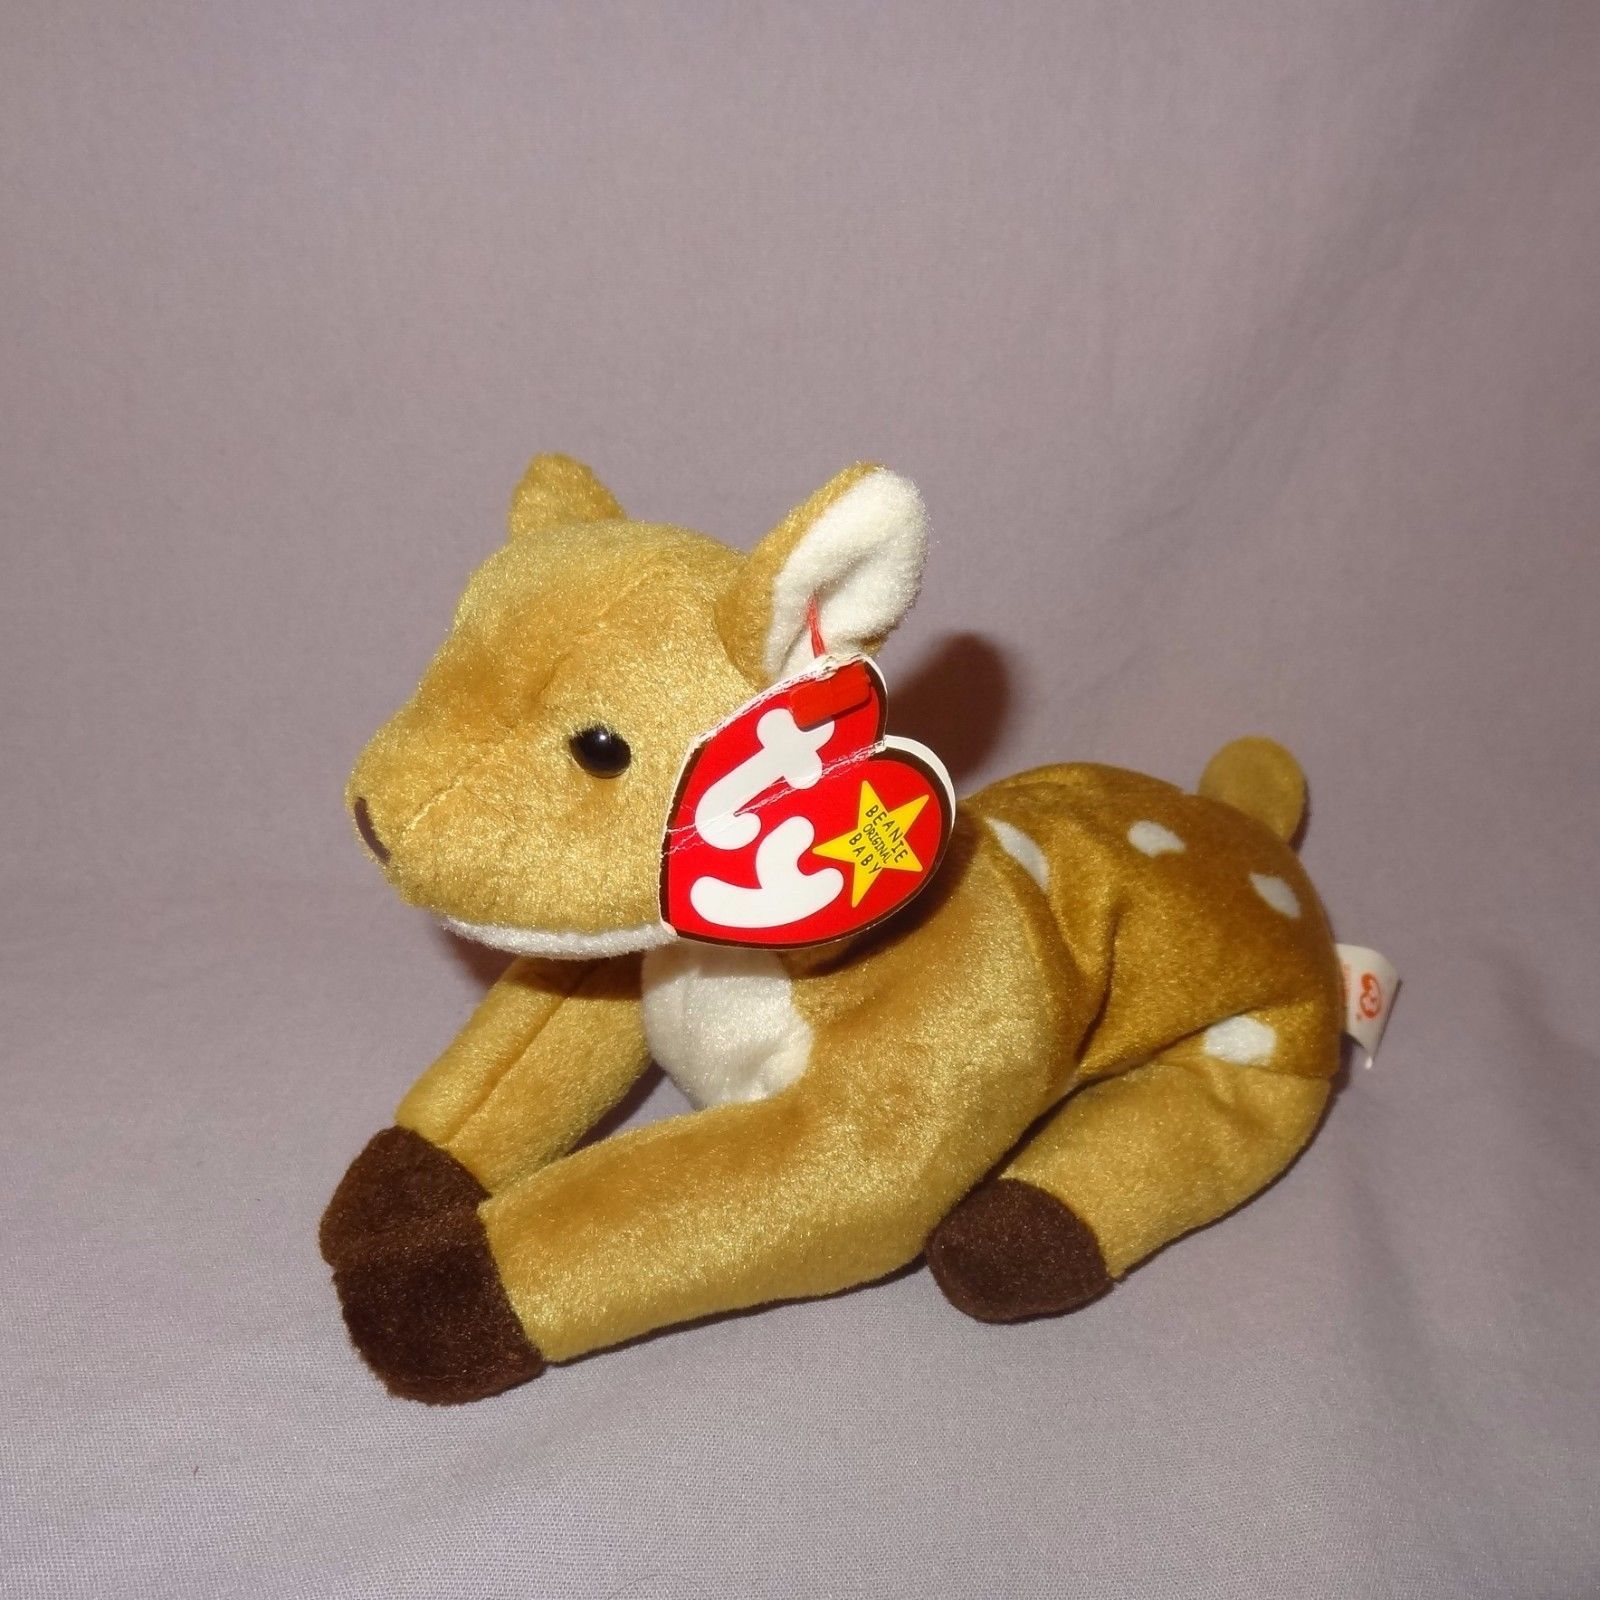 Whisper Deer Fawn Ty Beanie Baby Plush and 18 similar items d4ecf0626dc4